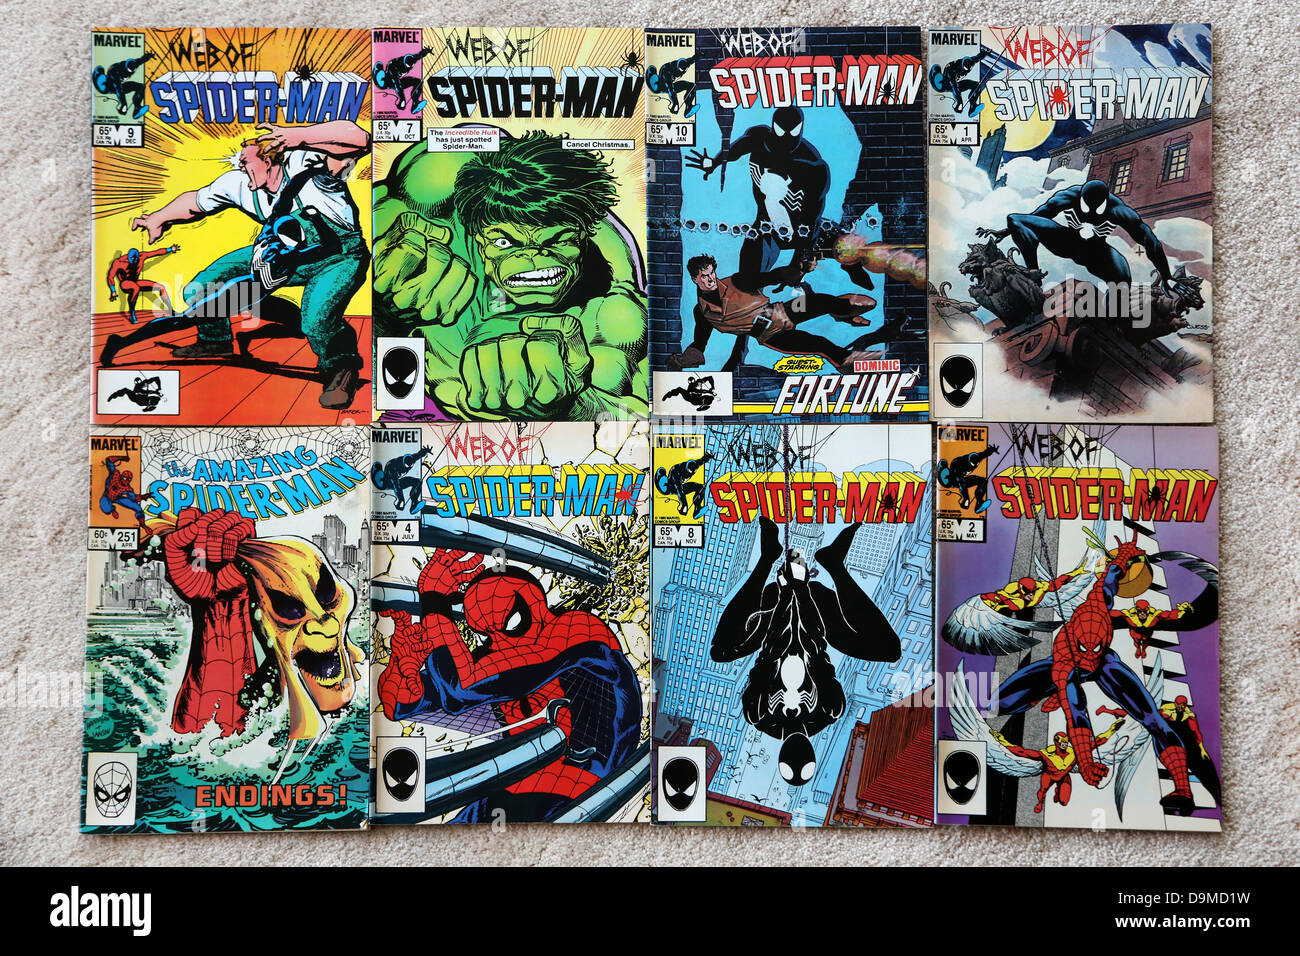 Collection Of Marvel Comics The Web Of Spider-man And The Amazing Spider-man - Stock Image